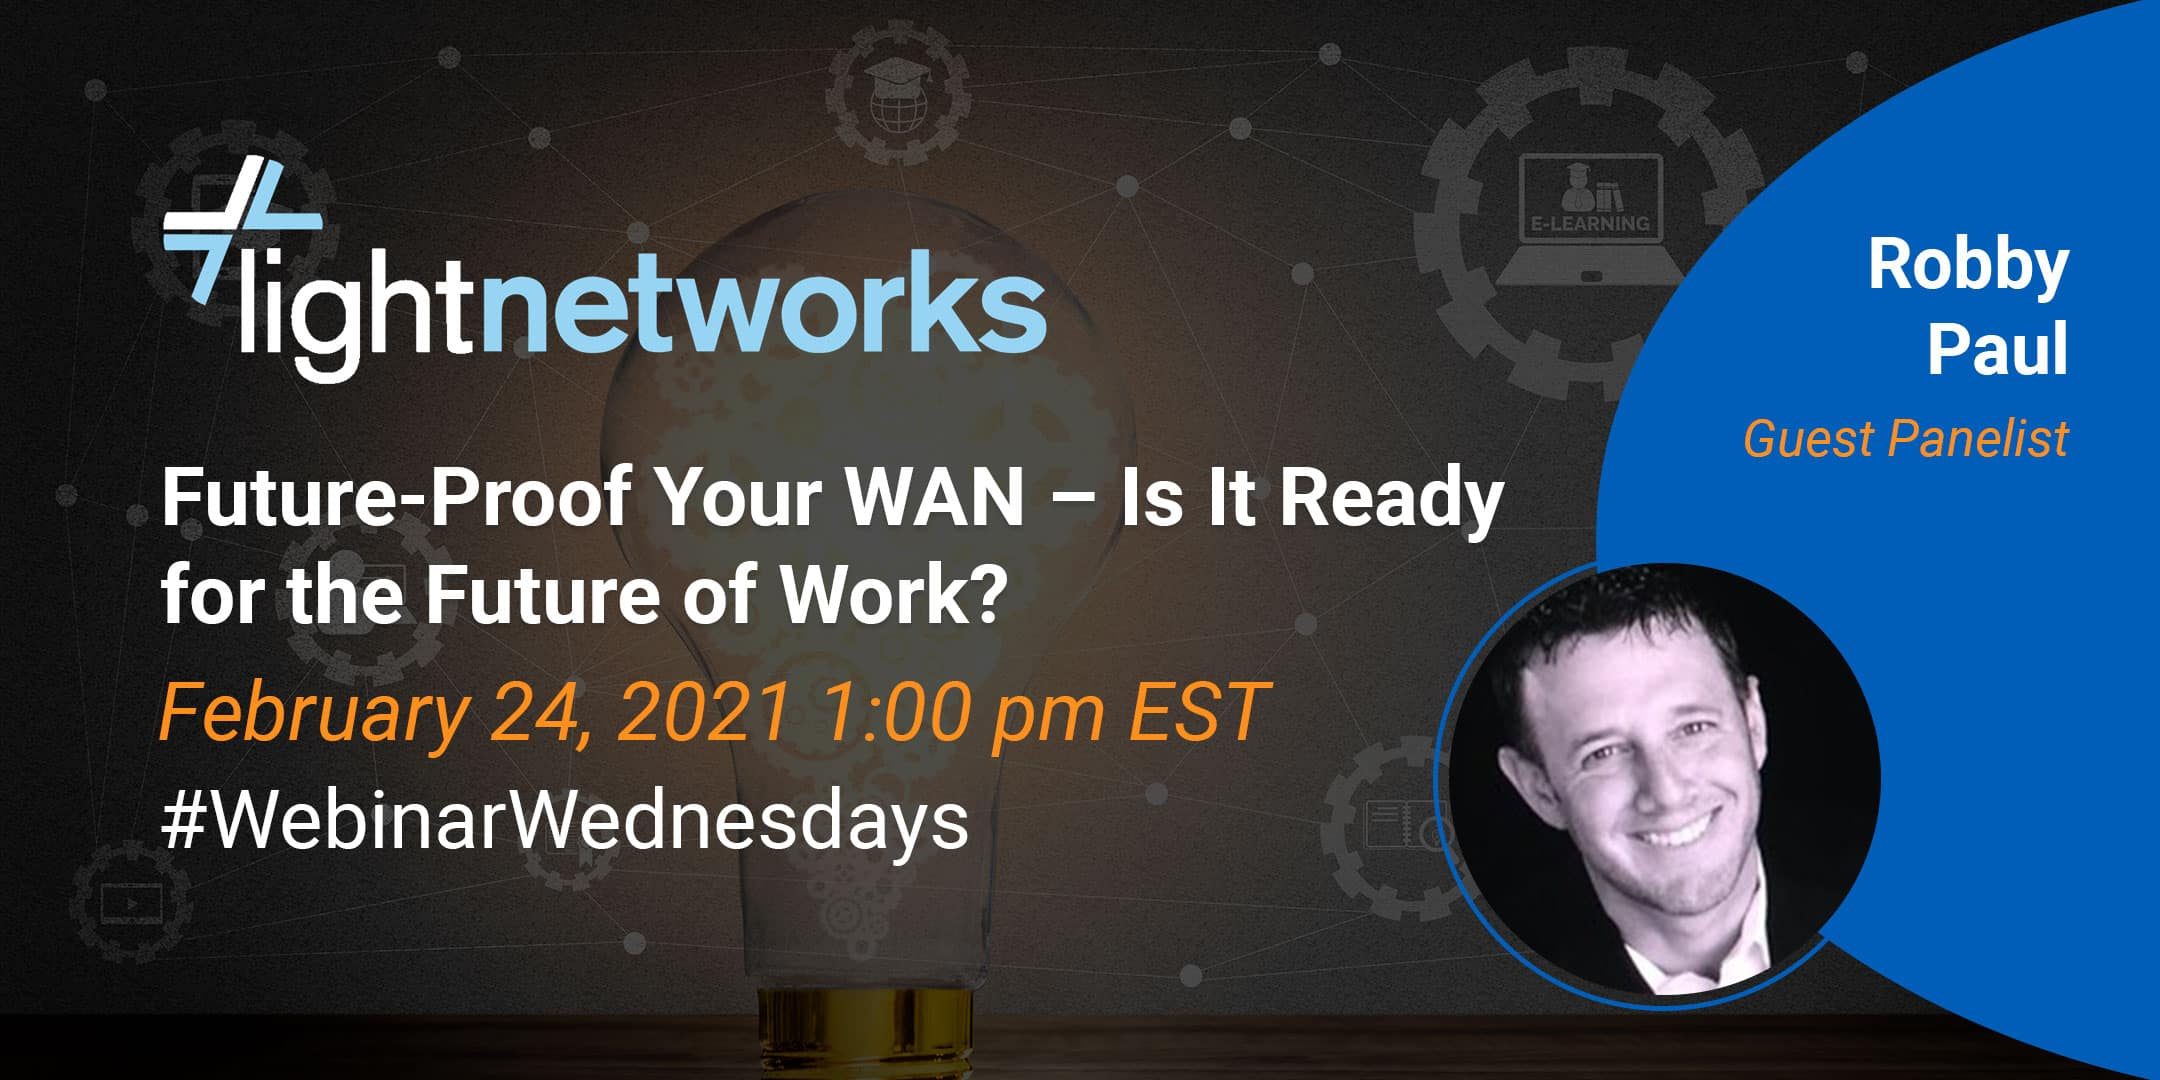 Light Networks: Future-Proof Your WAN – Is It Ready for the Future of Work?